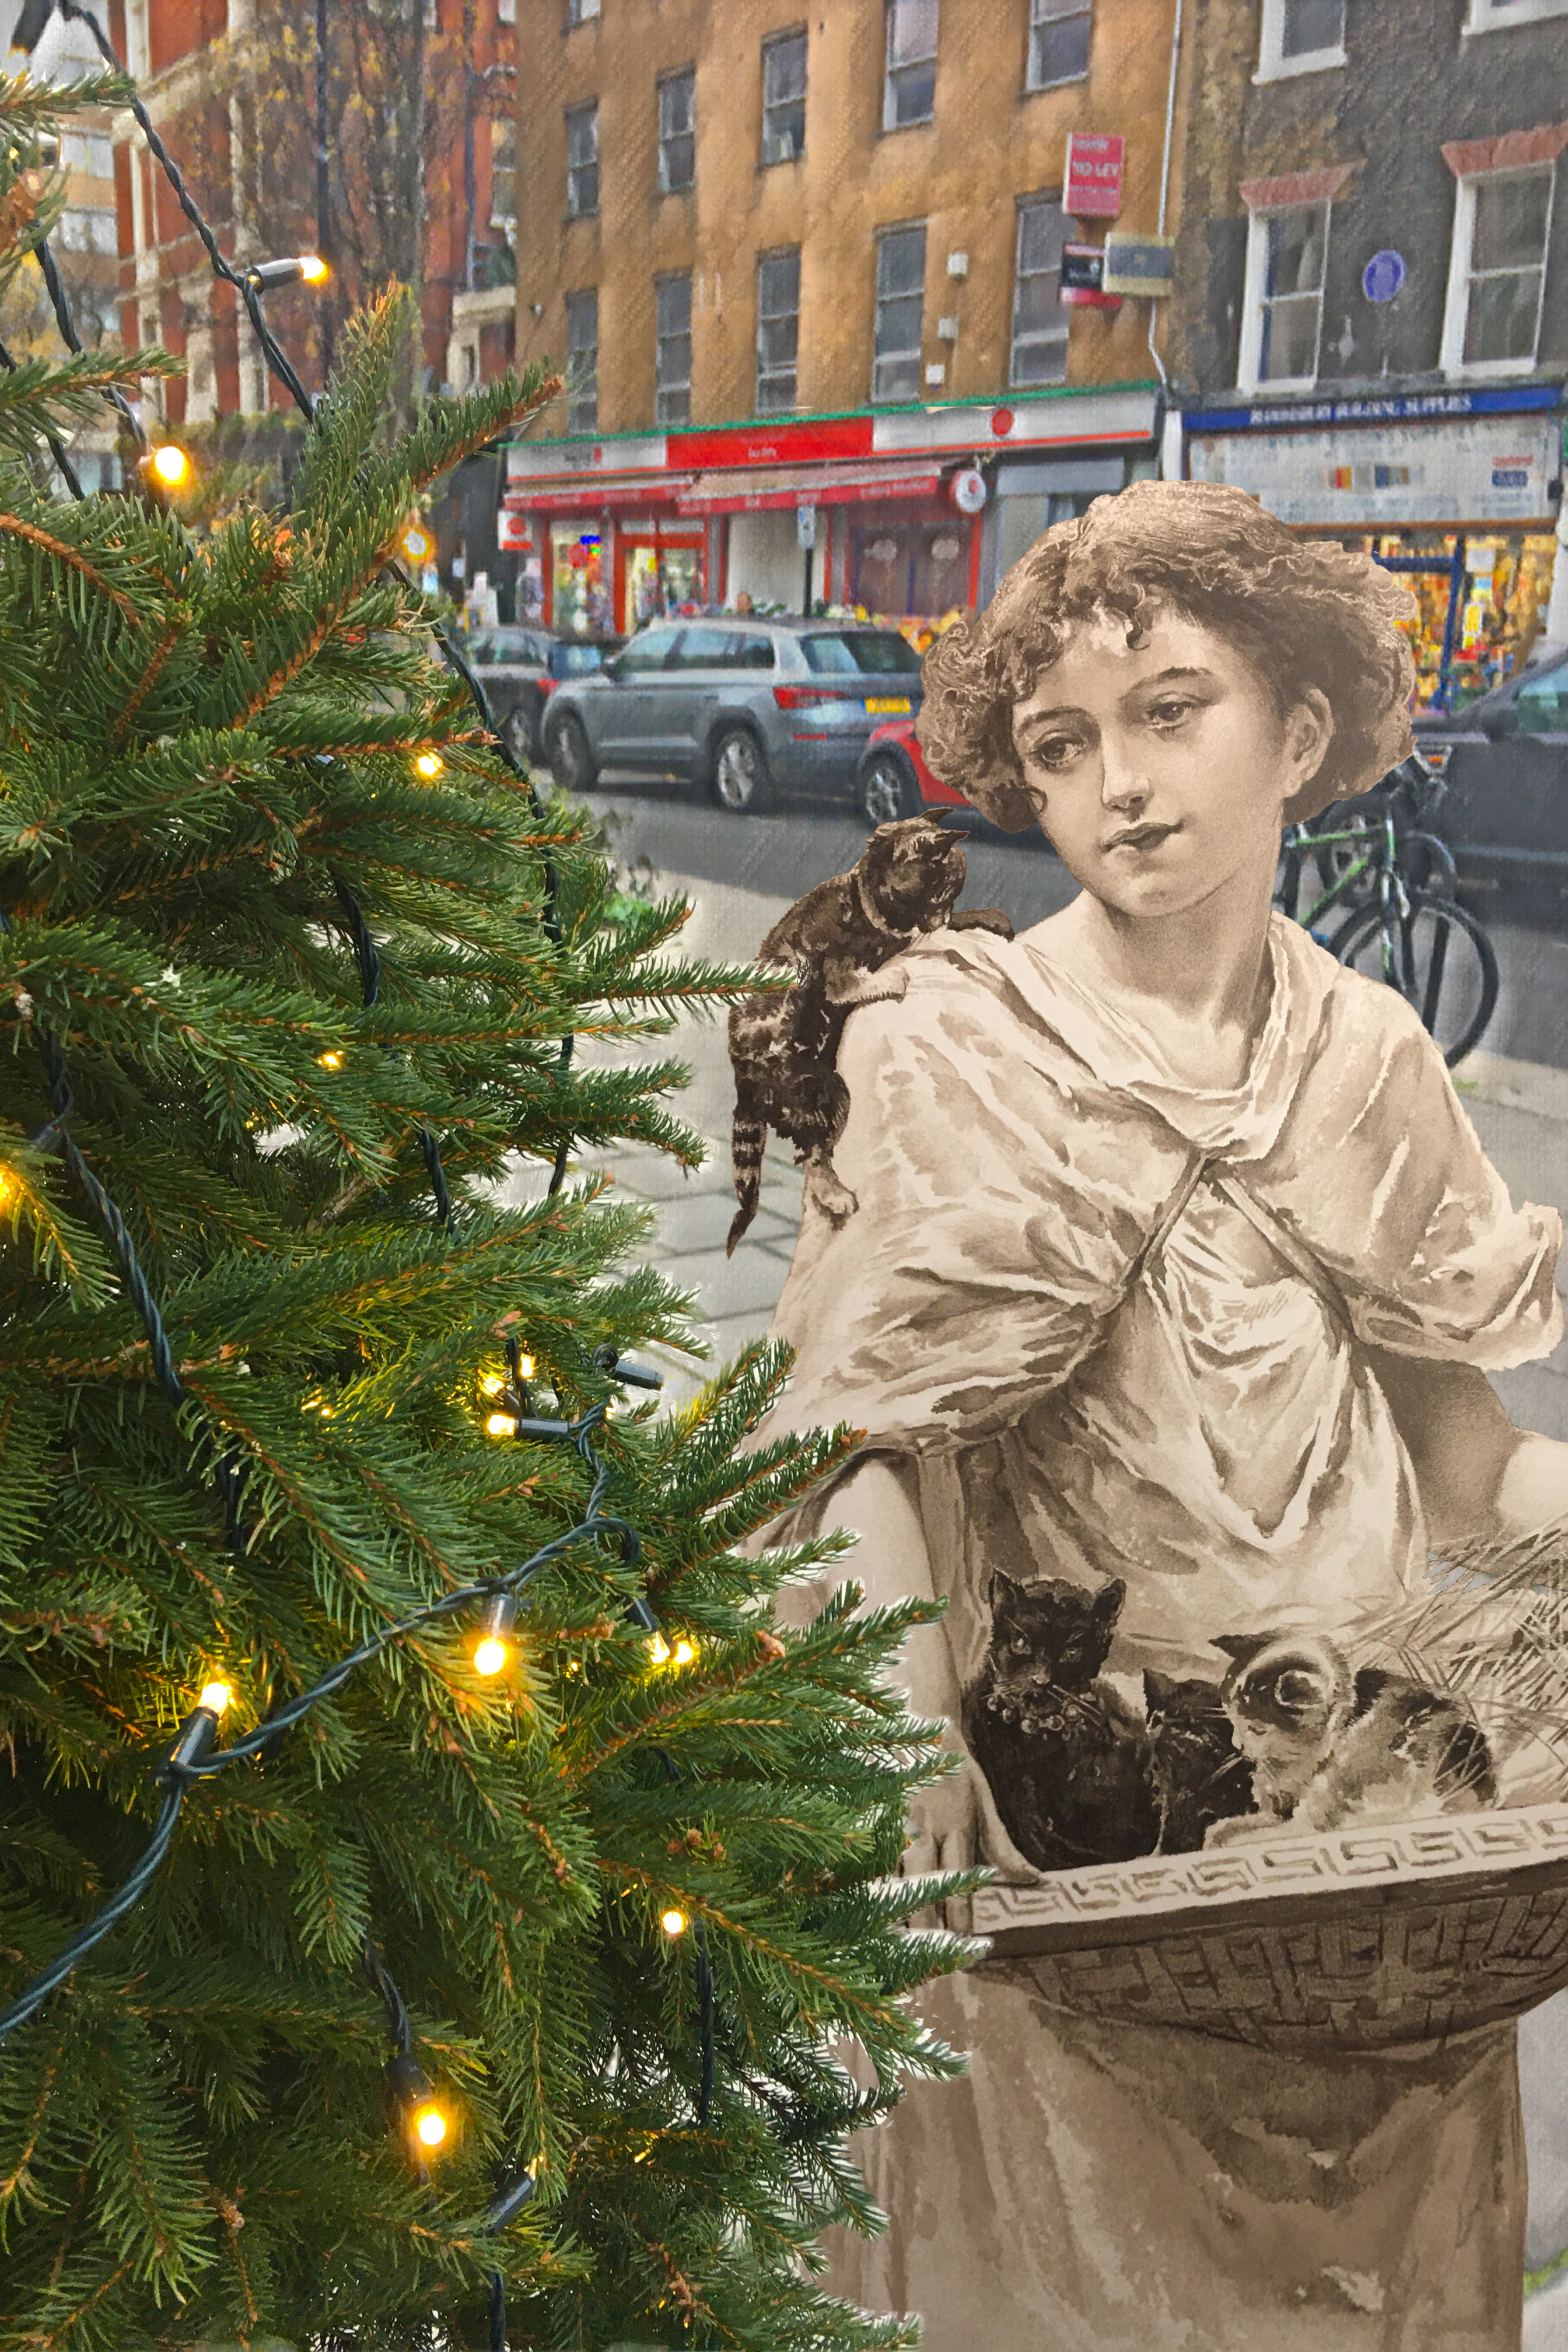 """Photograph taken on Marchmont Street, London, with figure from Alice Havers's """"Wide Awake"""" from the """"Cassell's Christmas Annual"""" (1890)"""